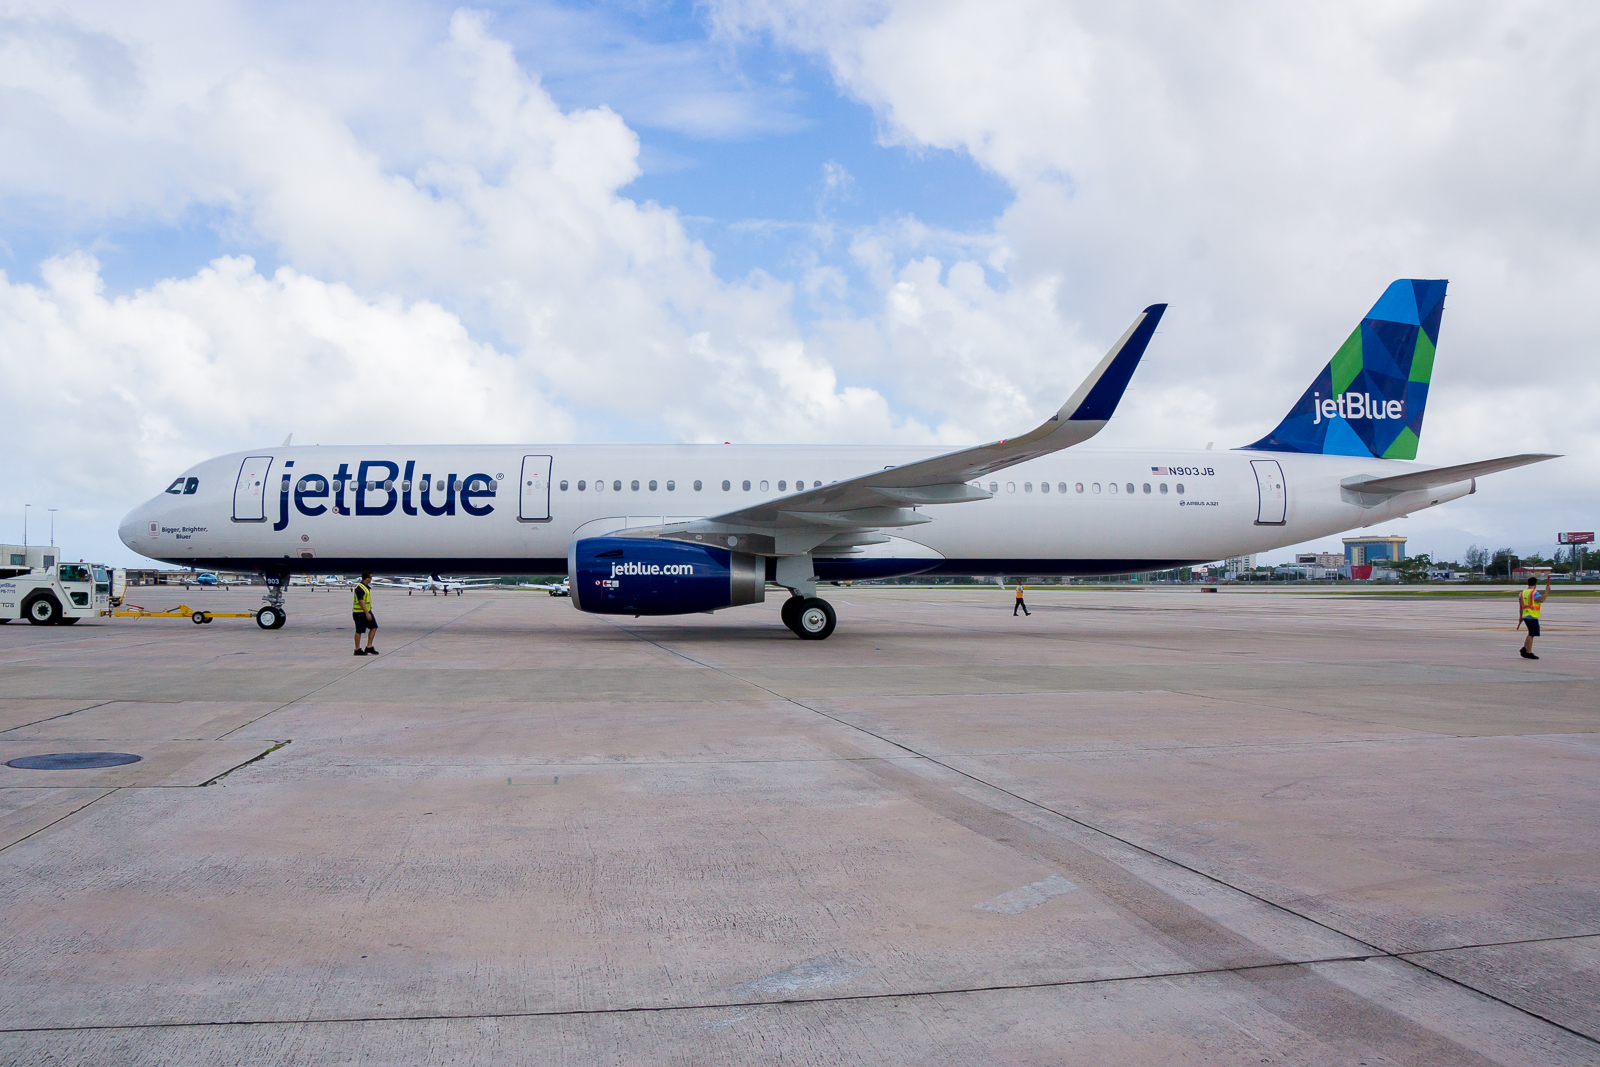 Jetblue Your top performing employees